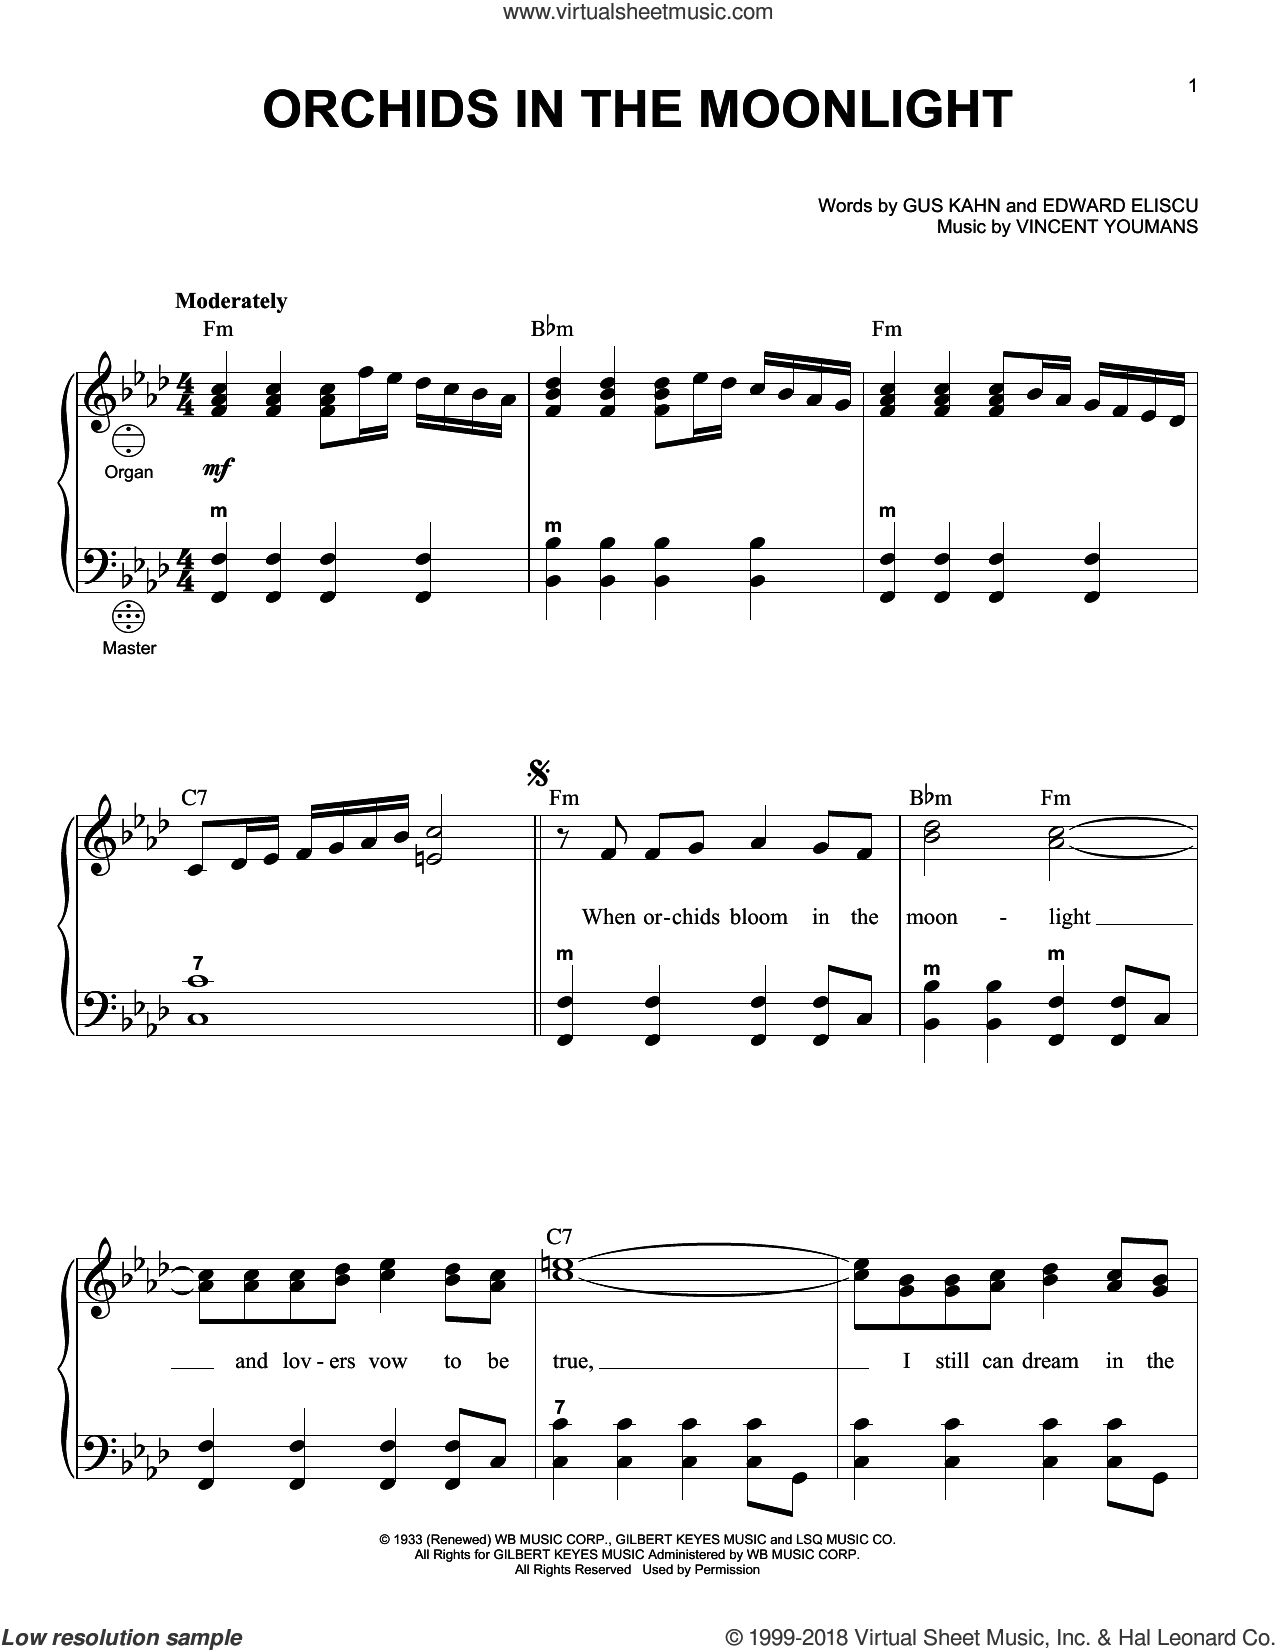 Orchids In The Moonlight sheet music for accordion by Gus Kahn, Gary Meisner, Edward Eliscu and Vincent Youmans, intermediate skill level